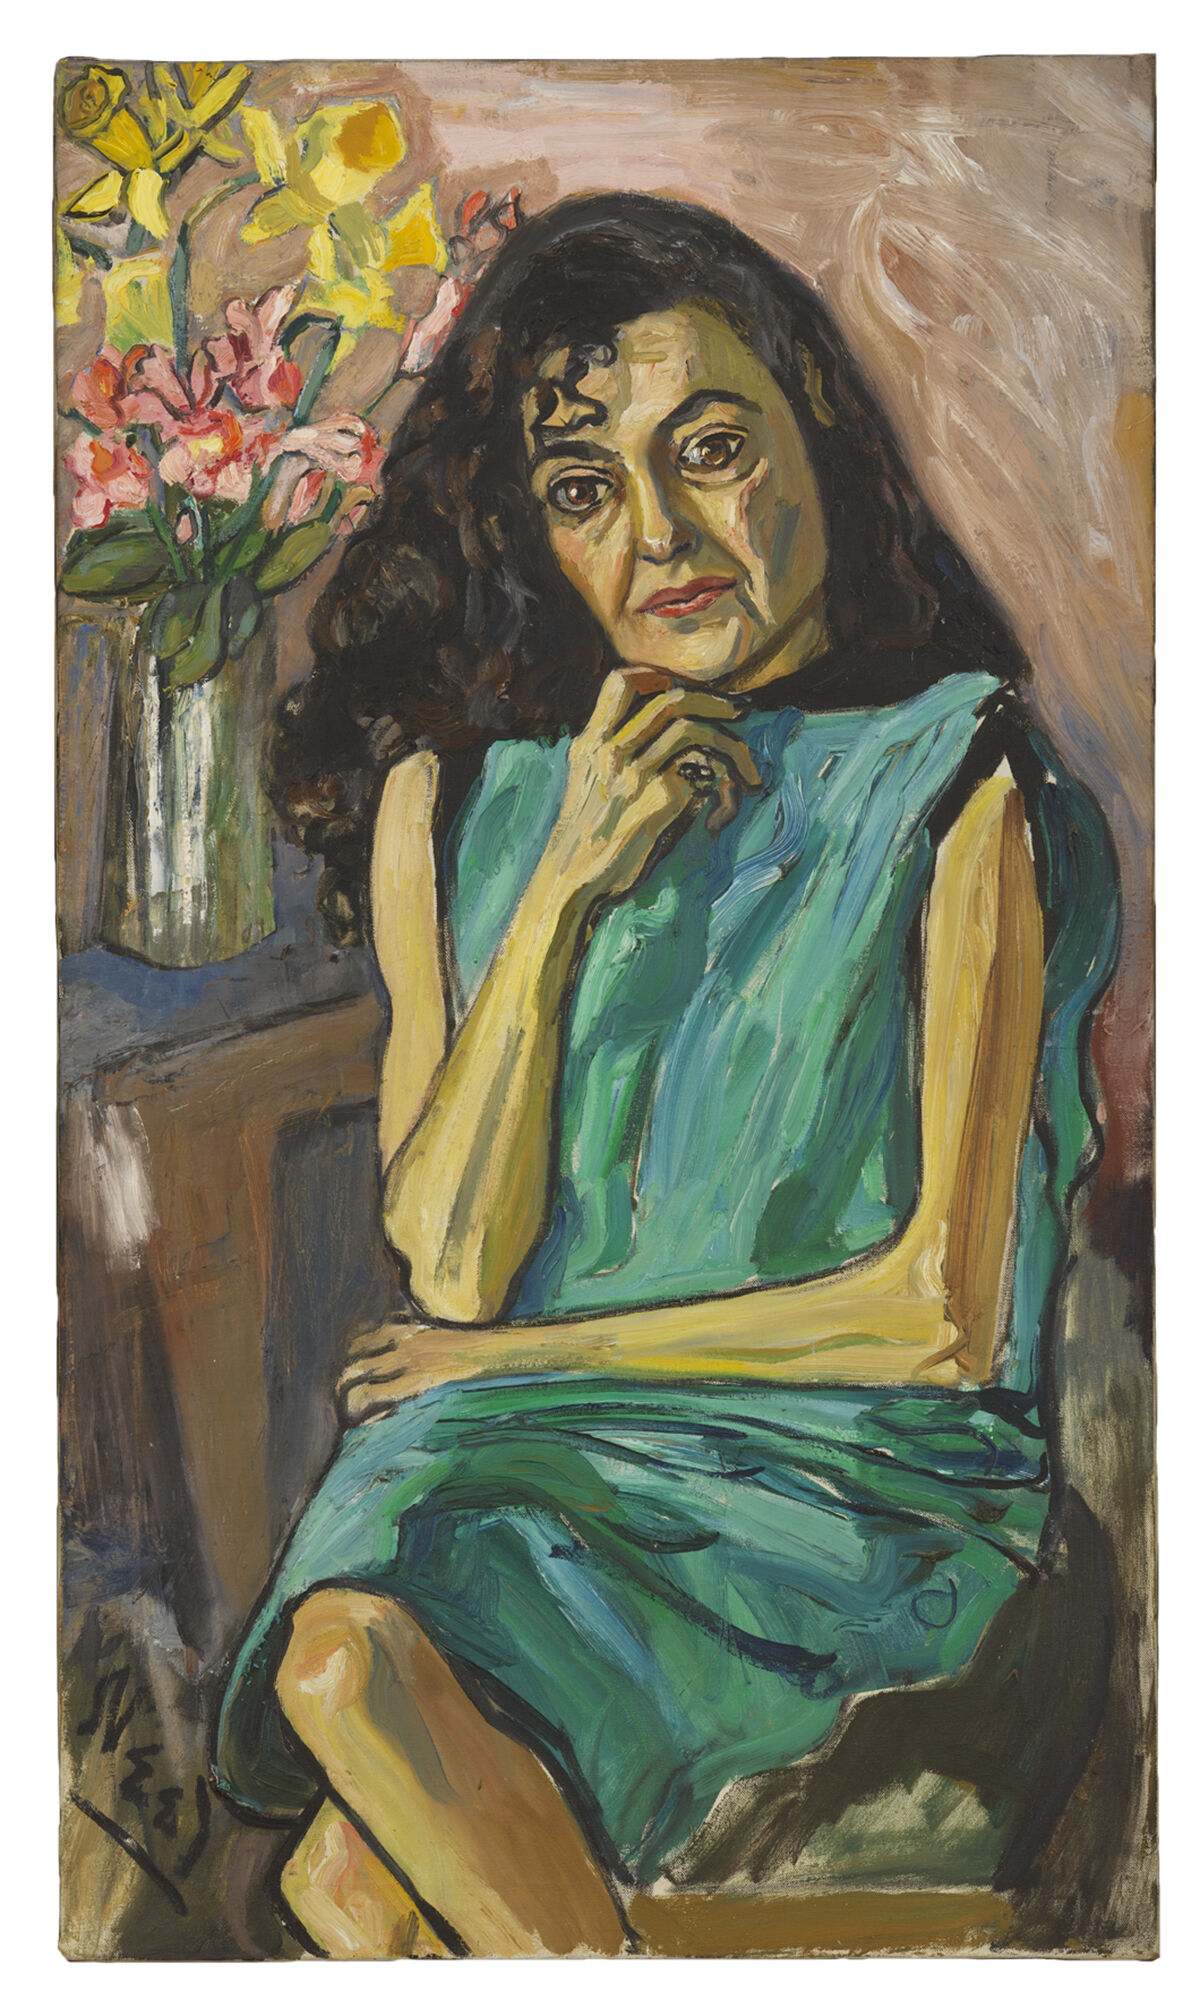 Alice Neel, Spanish Woman, c. 1950.Private Collection, courtesy Robert Miller, New York. © The Estate ofAliceNeel. Courtesy David Zwirner, New York/London and Victoria Miro, London.